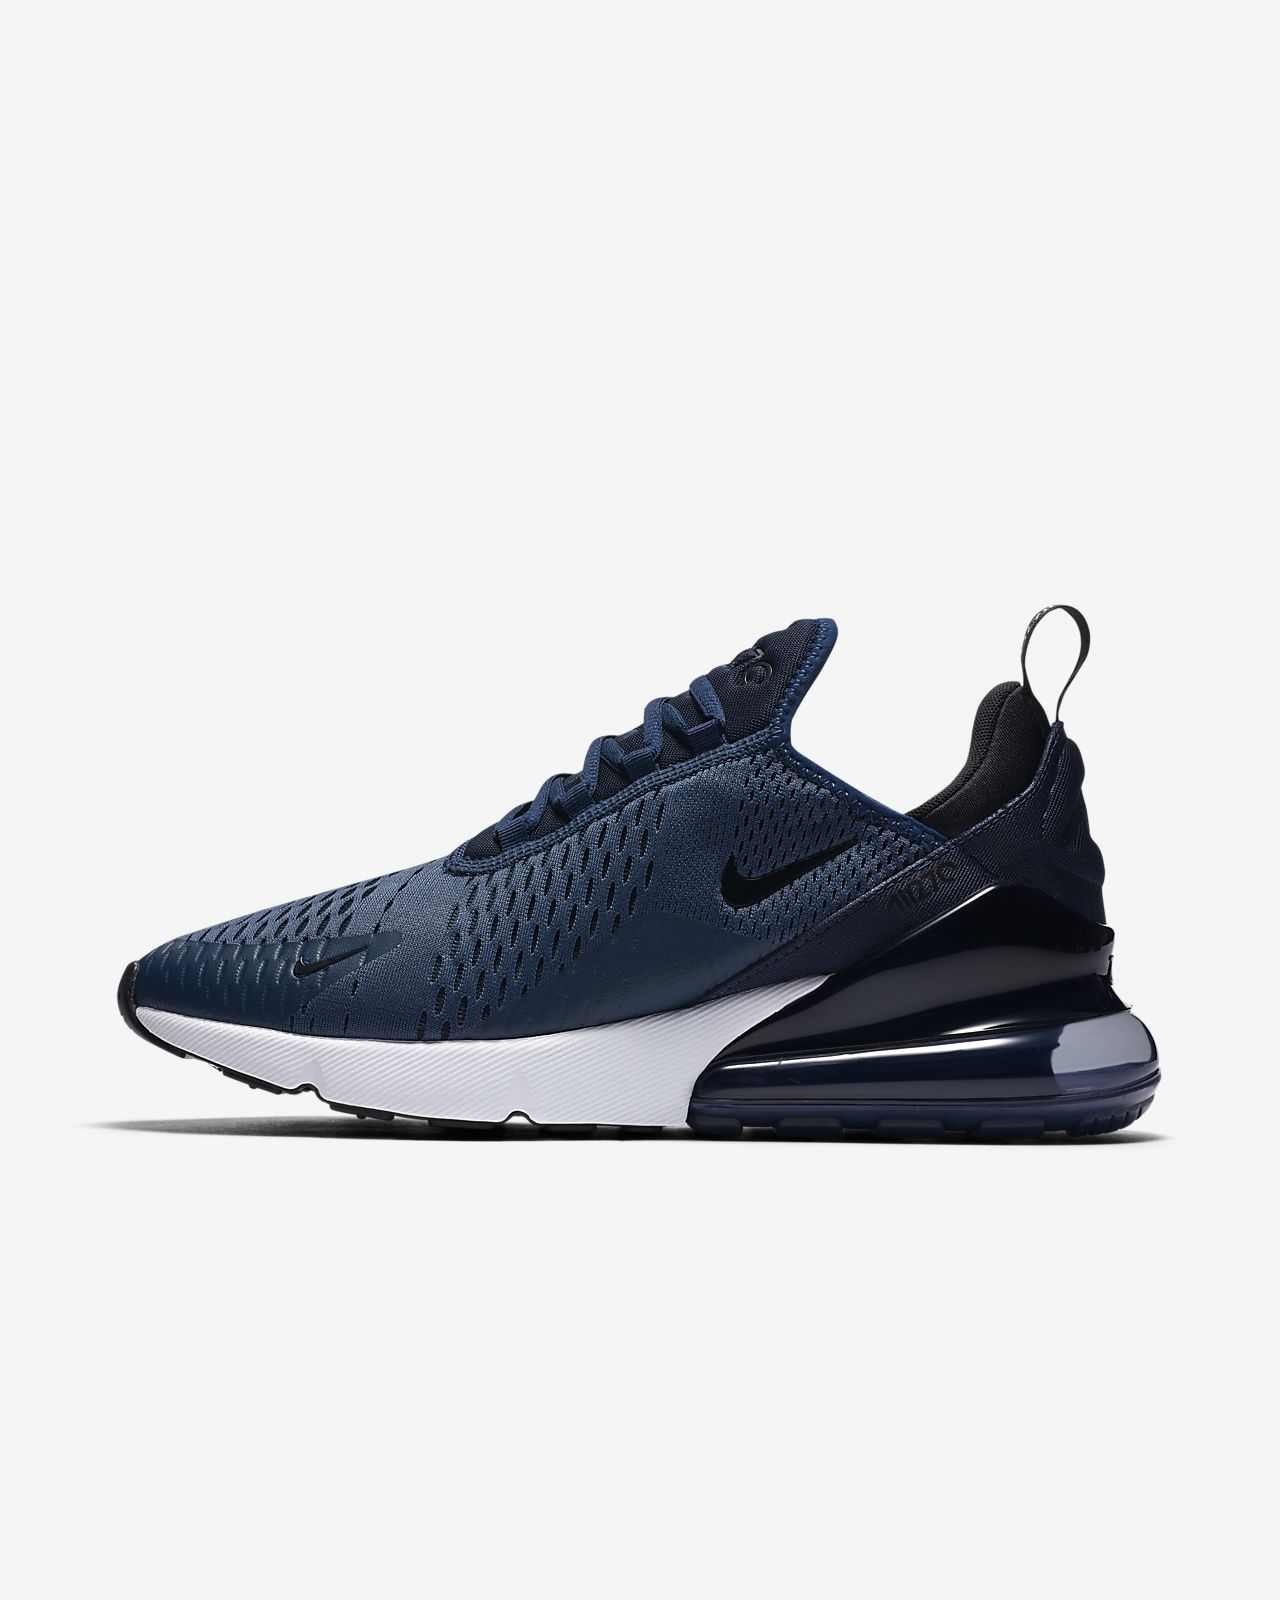 70a2e61e85ba Nike Air Max 270 Men s Shoe. Nike.com SE